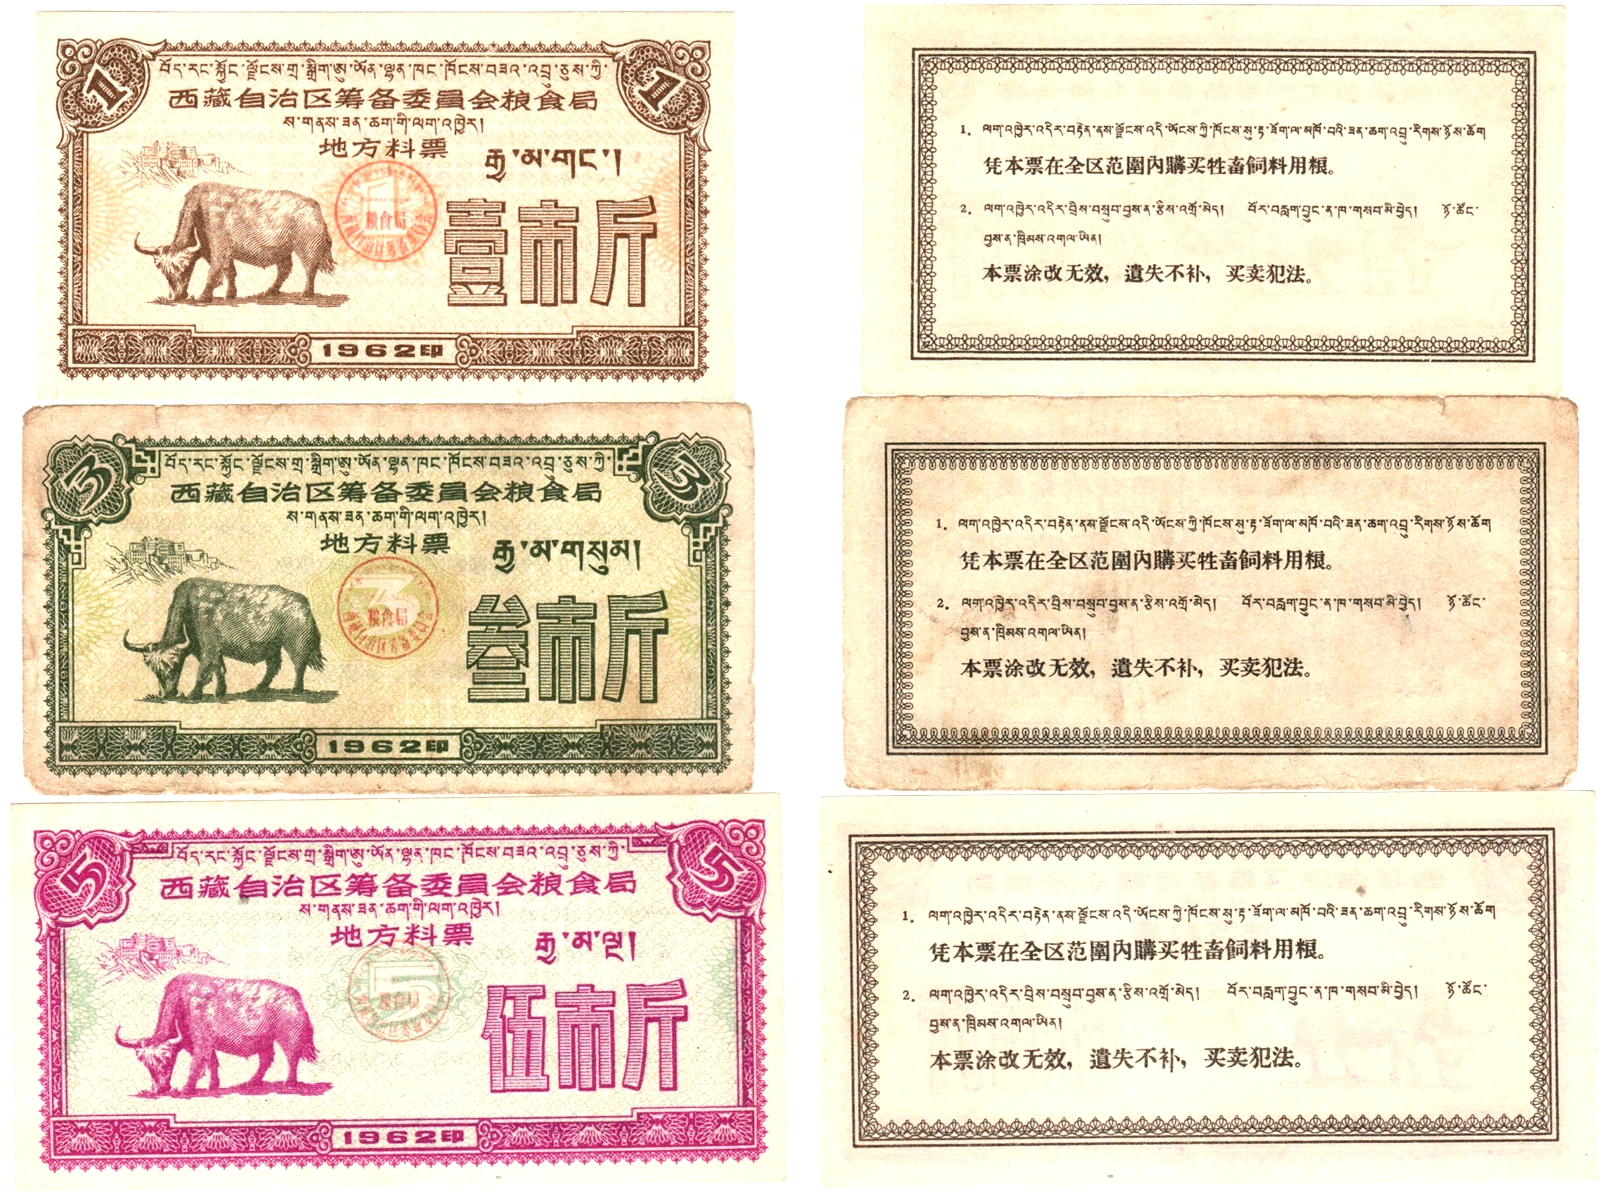 H7028, Tibet Local Feedstuffs Ration Coupon, 3 Pcs, 1962 Issue